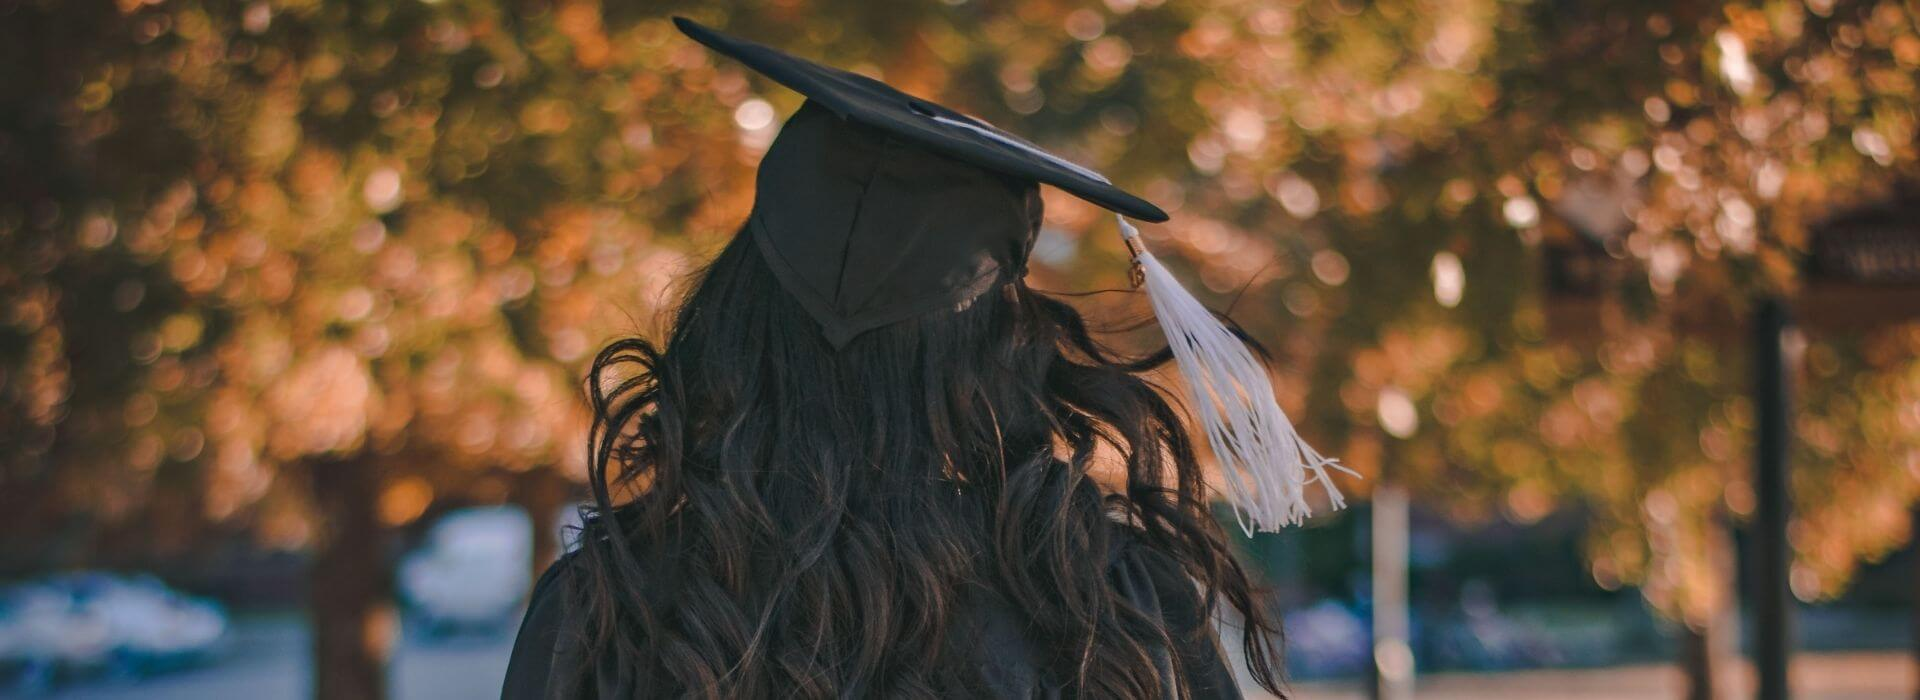 Girl walking with graduation cap and gown